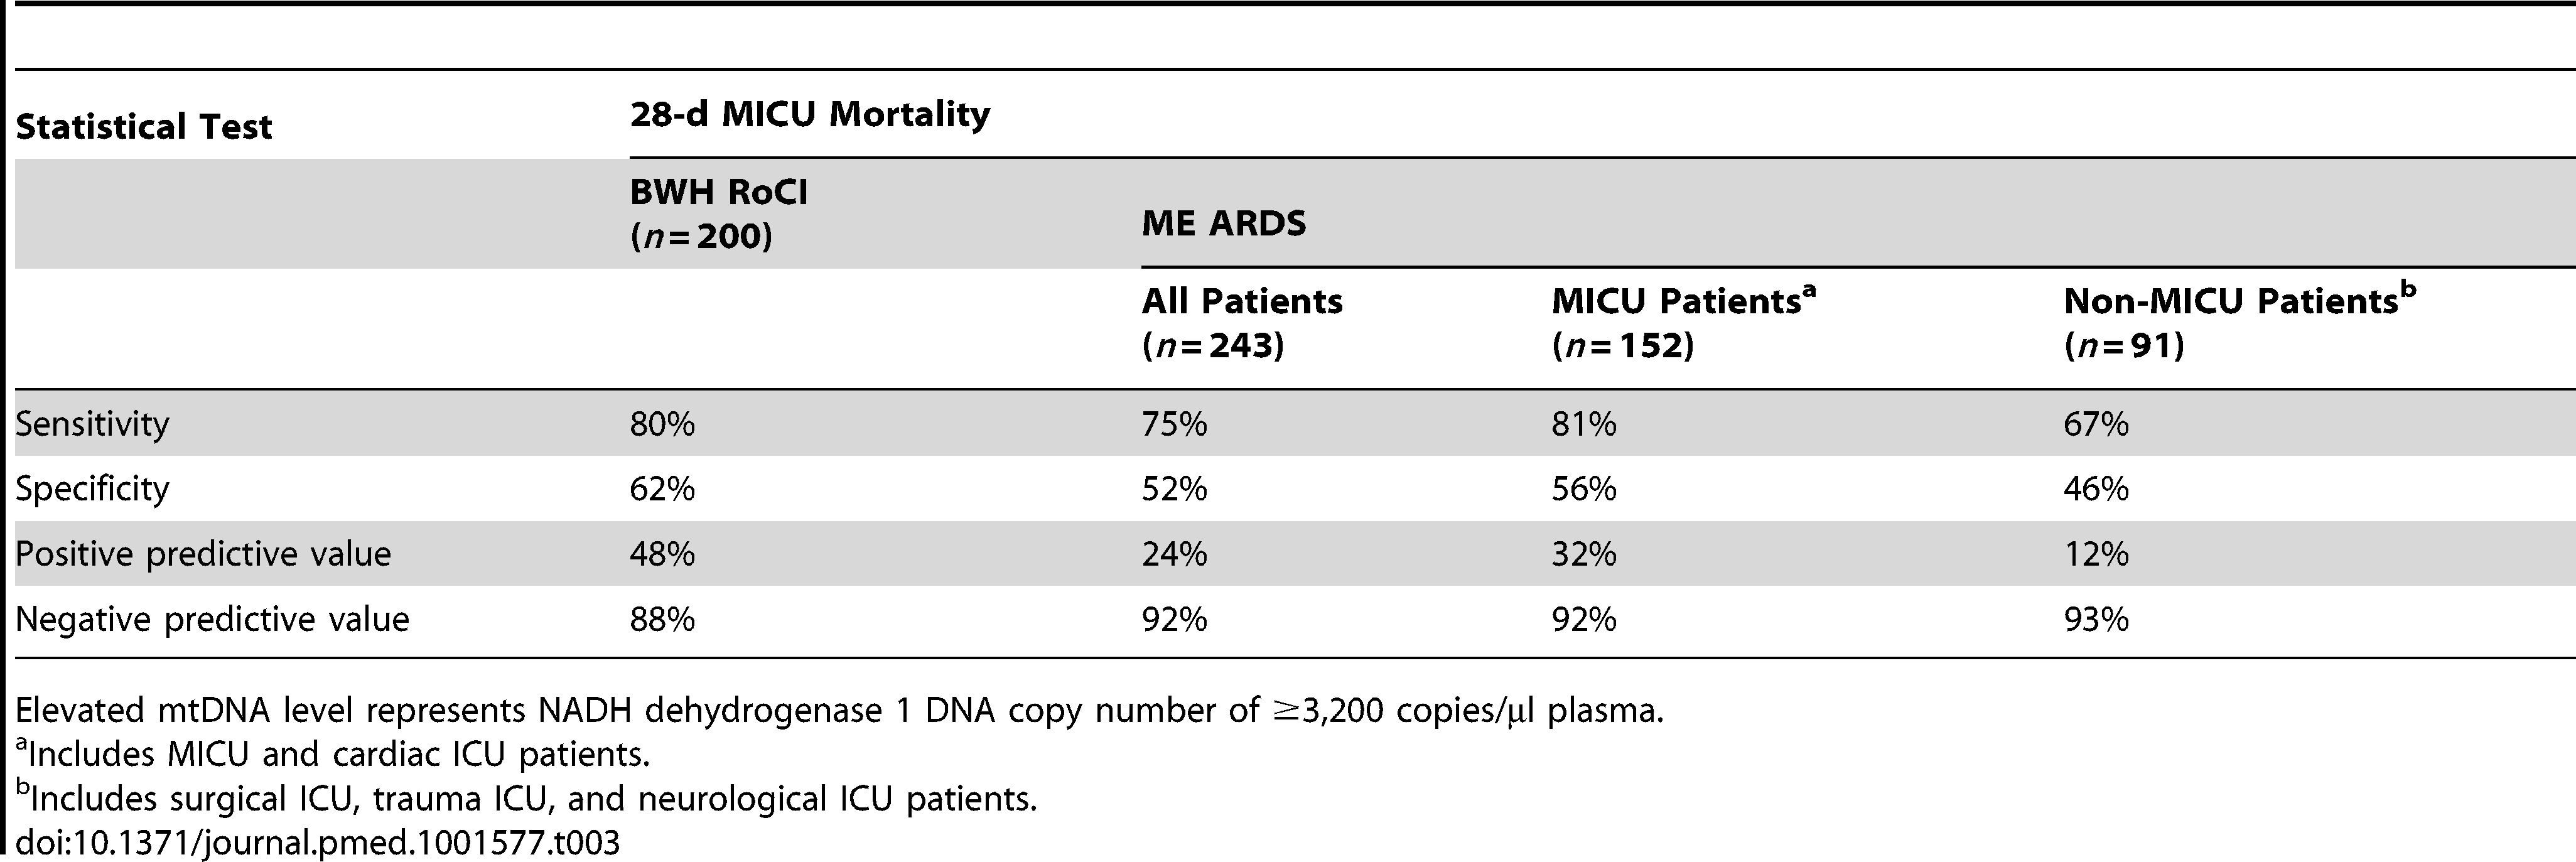 Elevated mtDNA levels and 28-d MICU mortality by group.